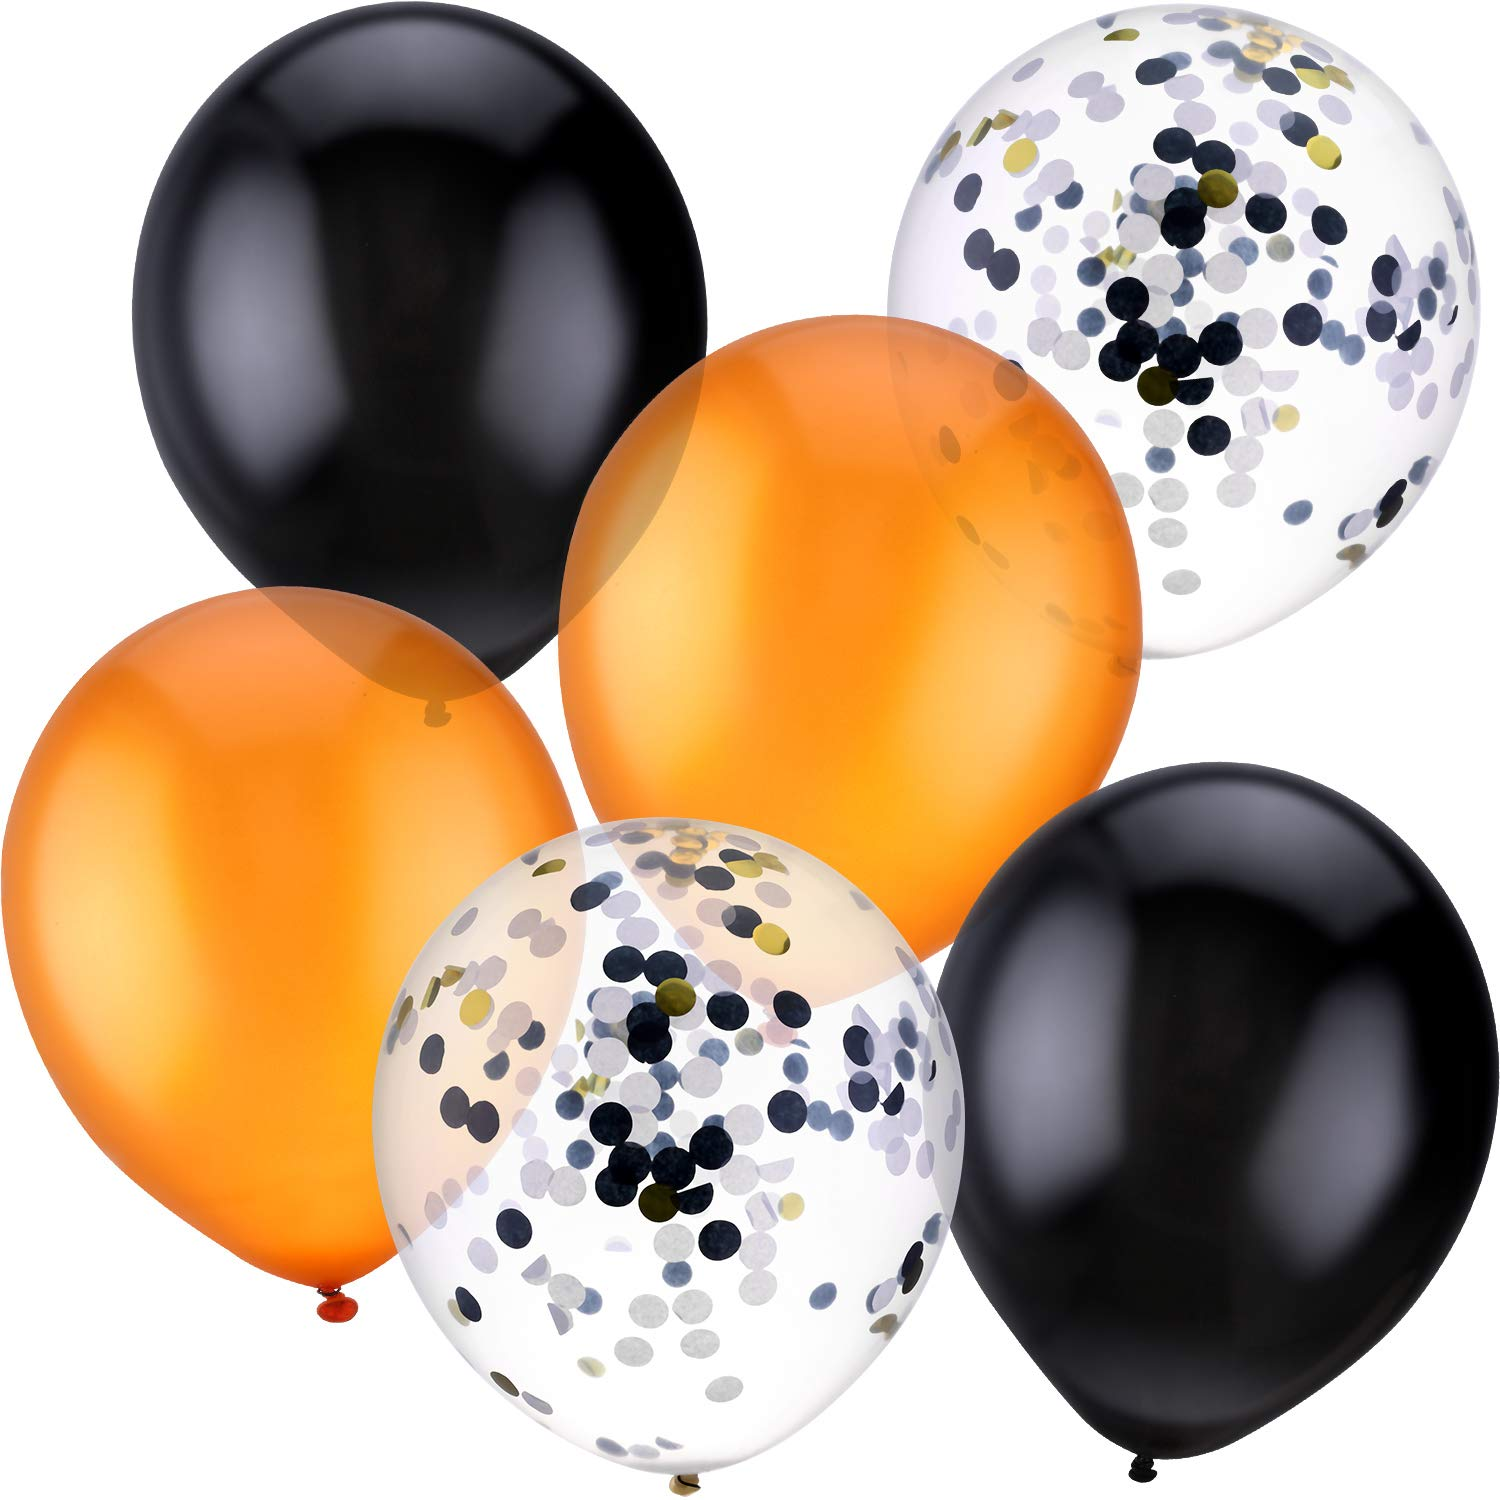 45 Pieces Orange Black Confetti Balloon Halloween Balloon Party Decoration Boao